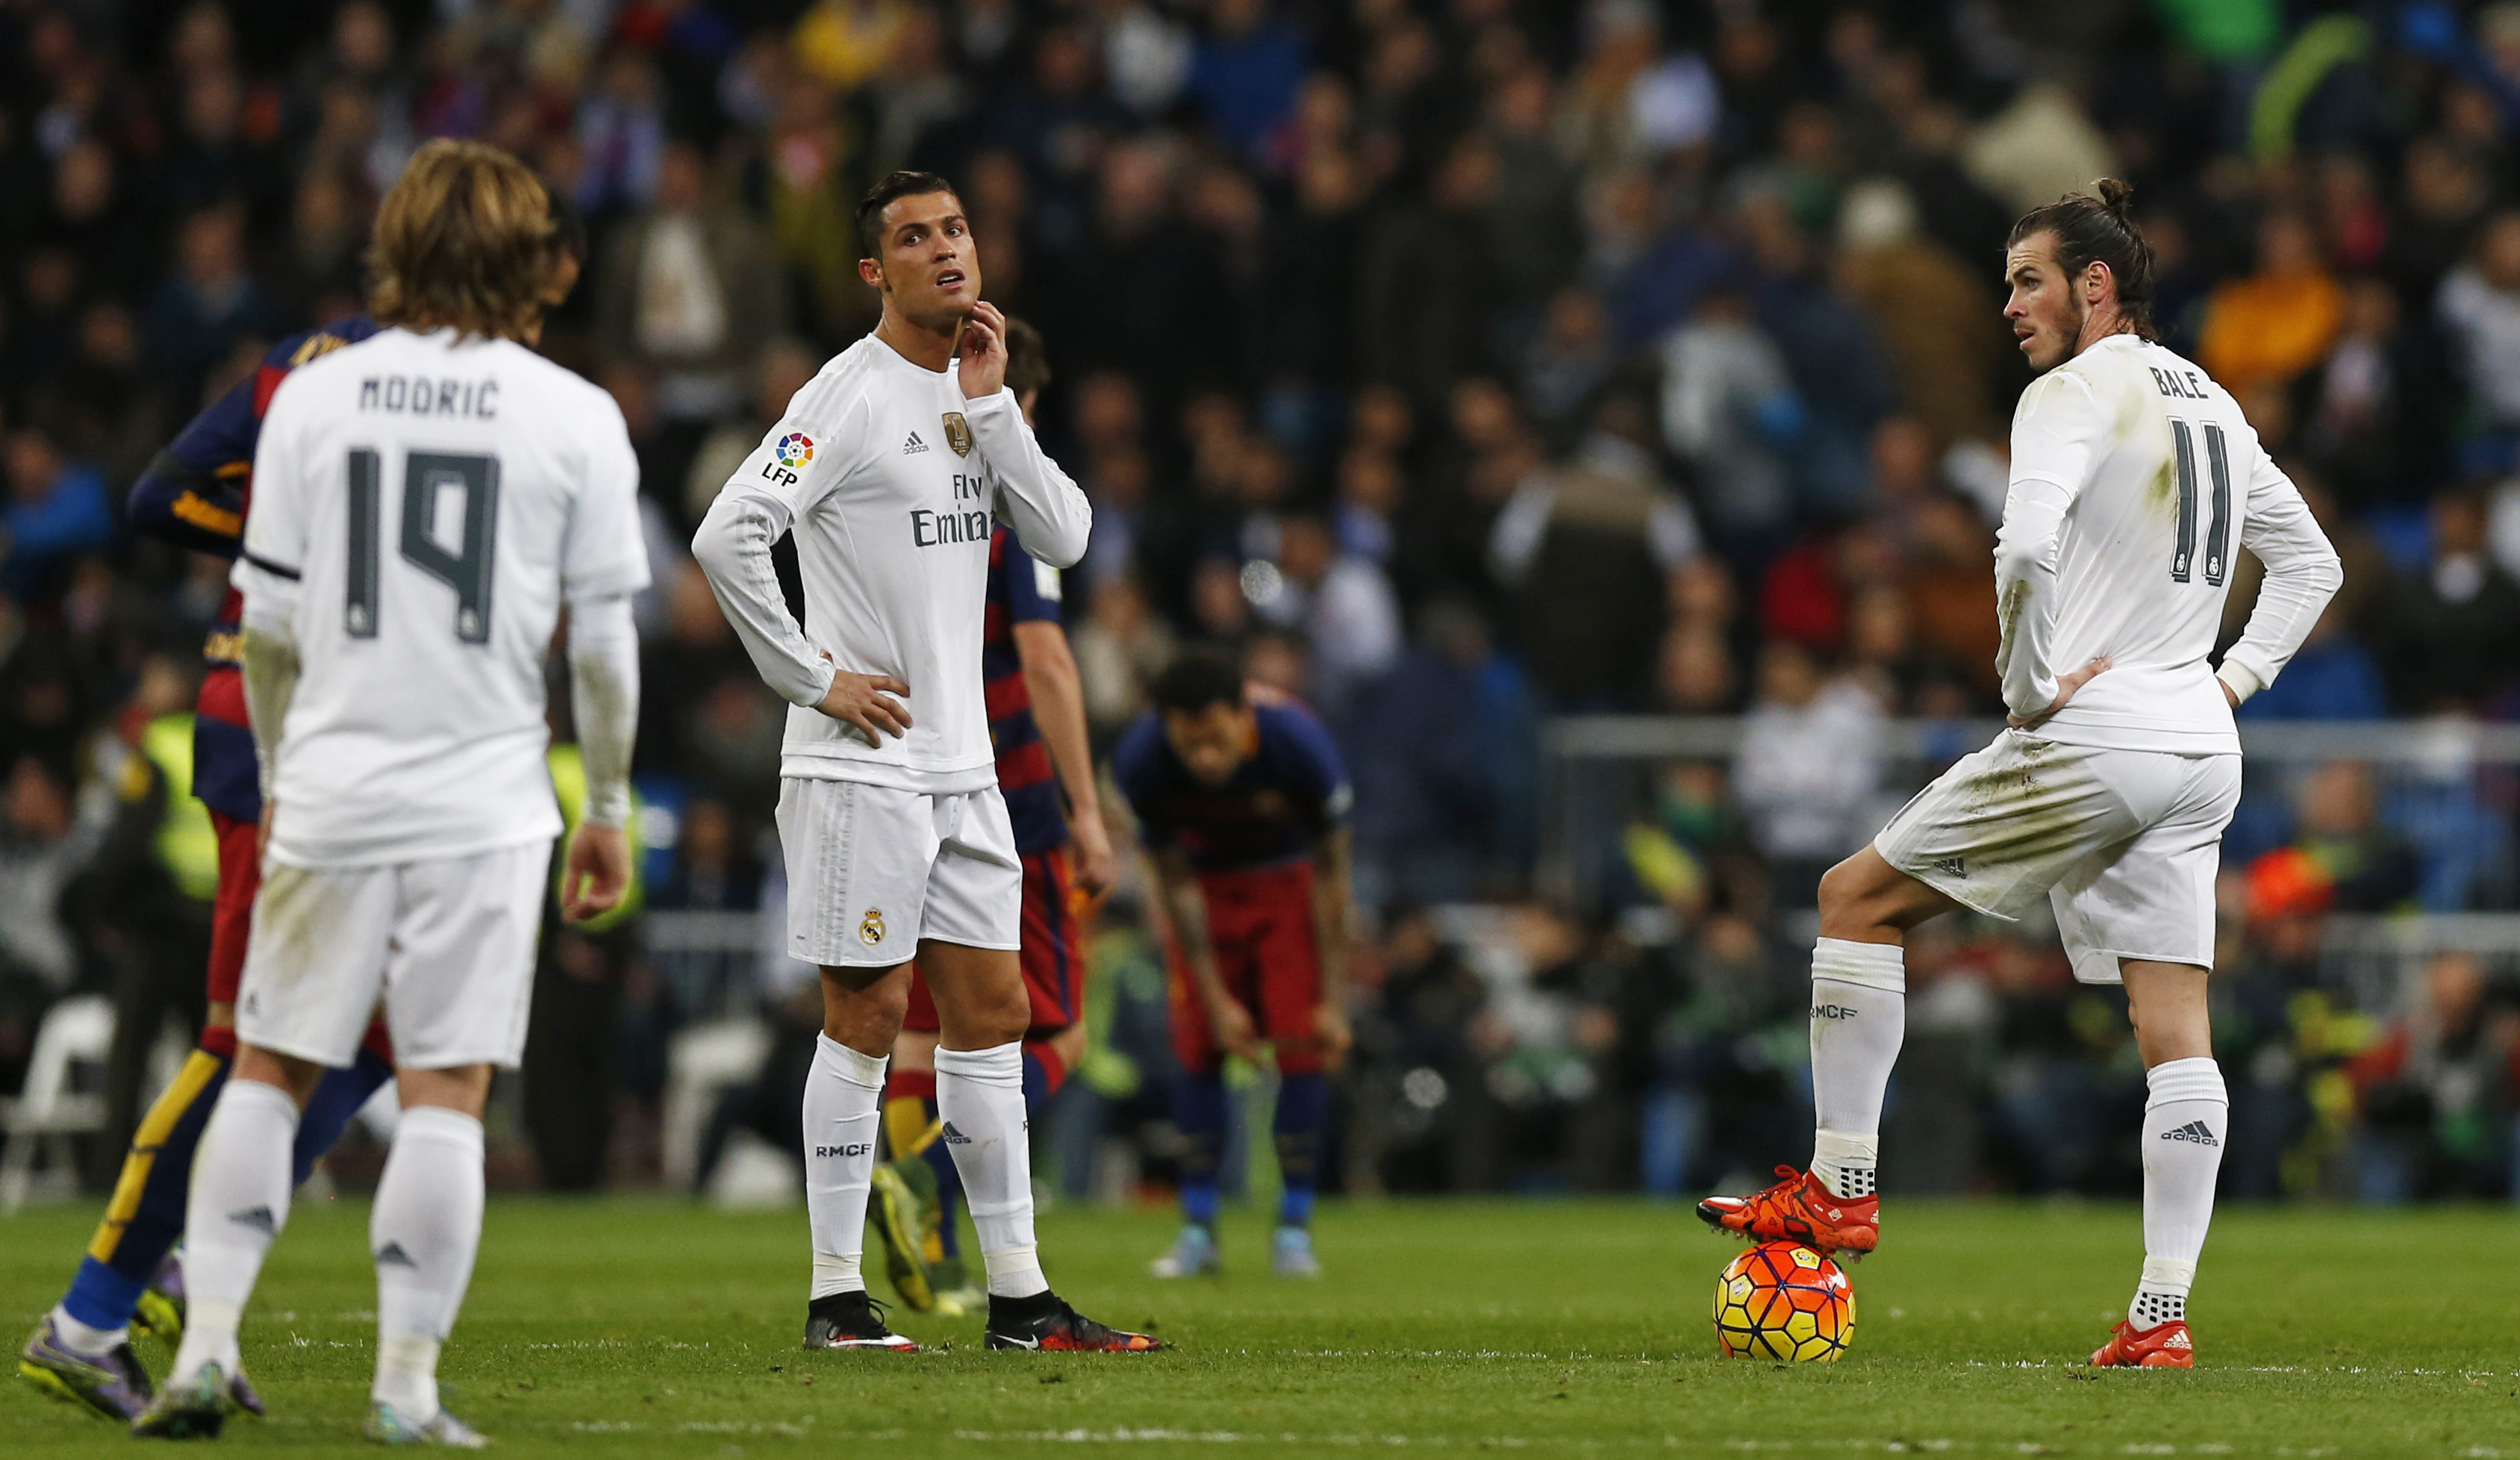 Football - Real Madrid v Barcelona - Liga BBVA - Santiago Bernabeu - 21/11/15 Real Madrid's Gareth Bale (R) and Cristiano Ronaldo (2nd L) look dejected as they prepare to take a centre kick after Barcelona's Luis Suarez (not pictured) scored their fourth goal Reuters / Stringer Livepic